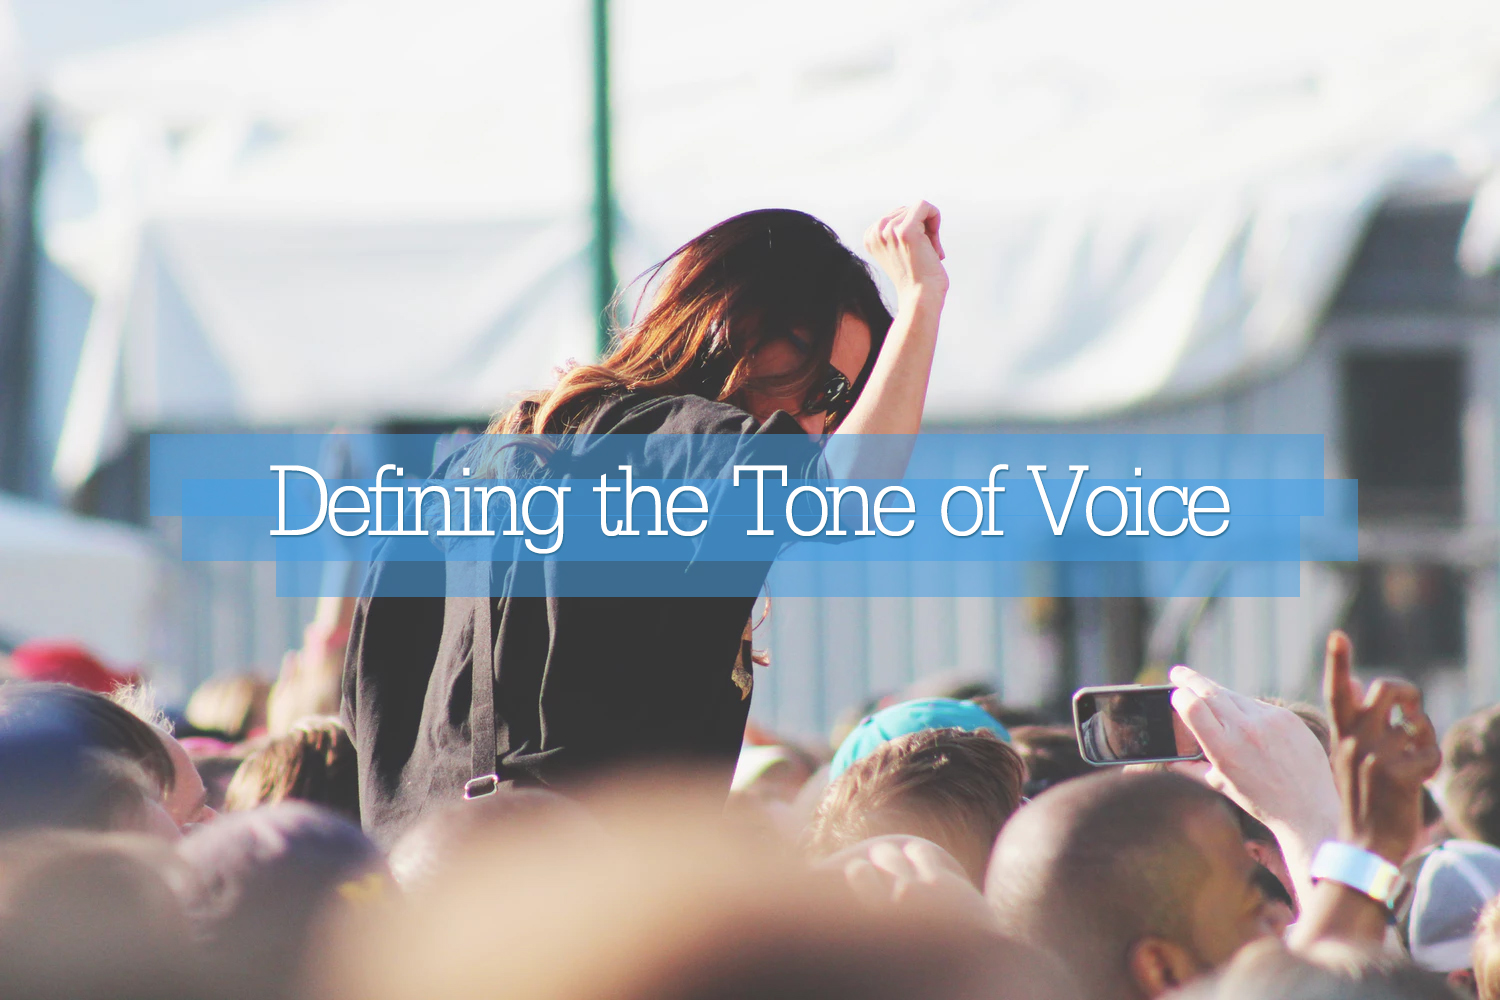 Defining the Tone of Voice